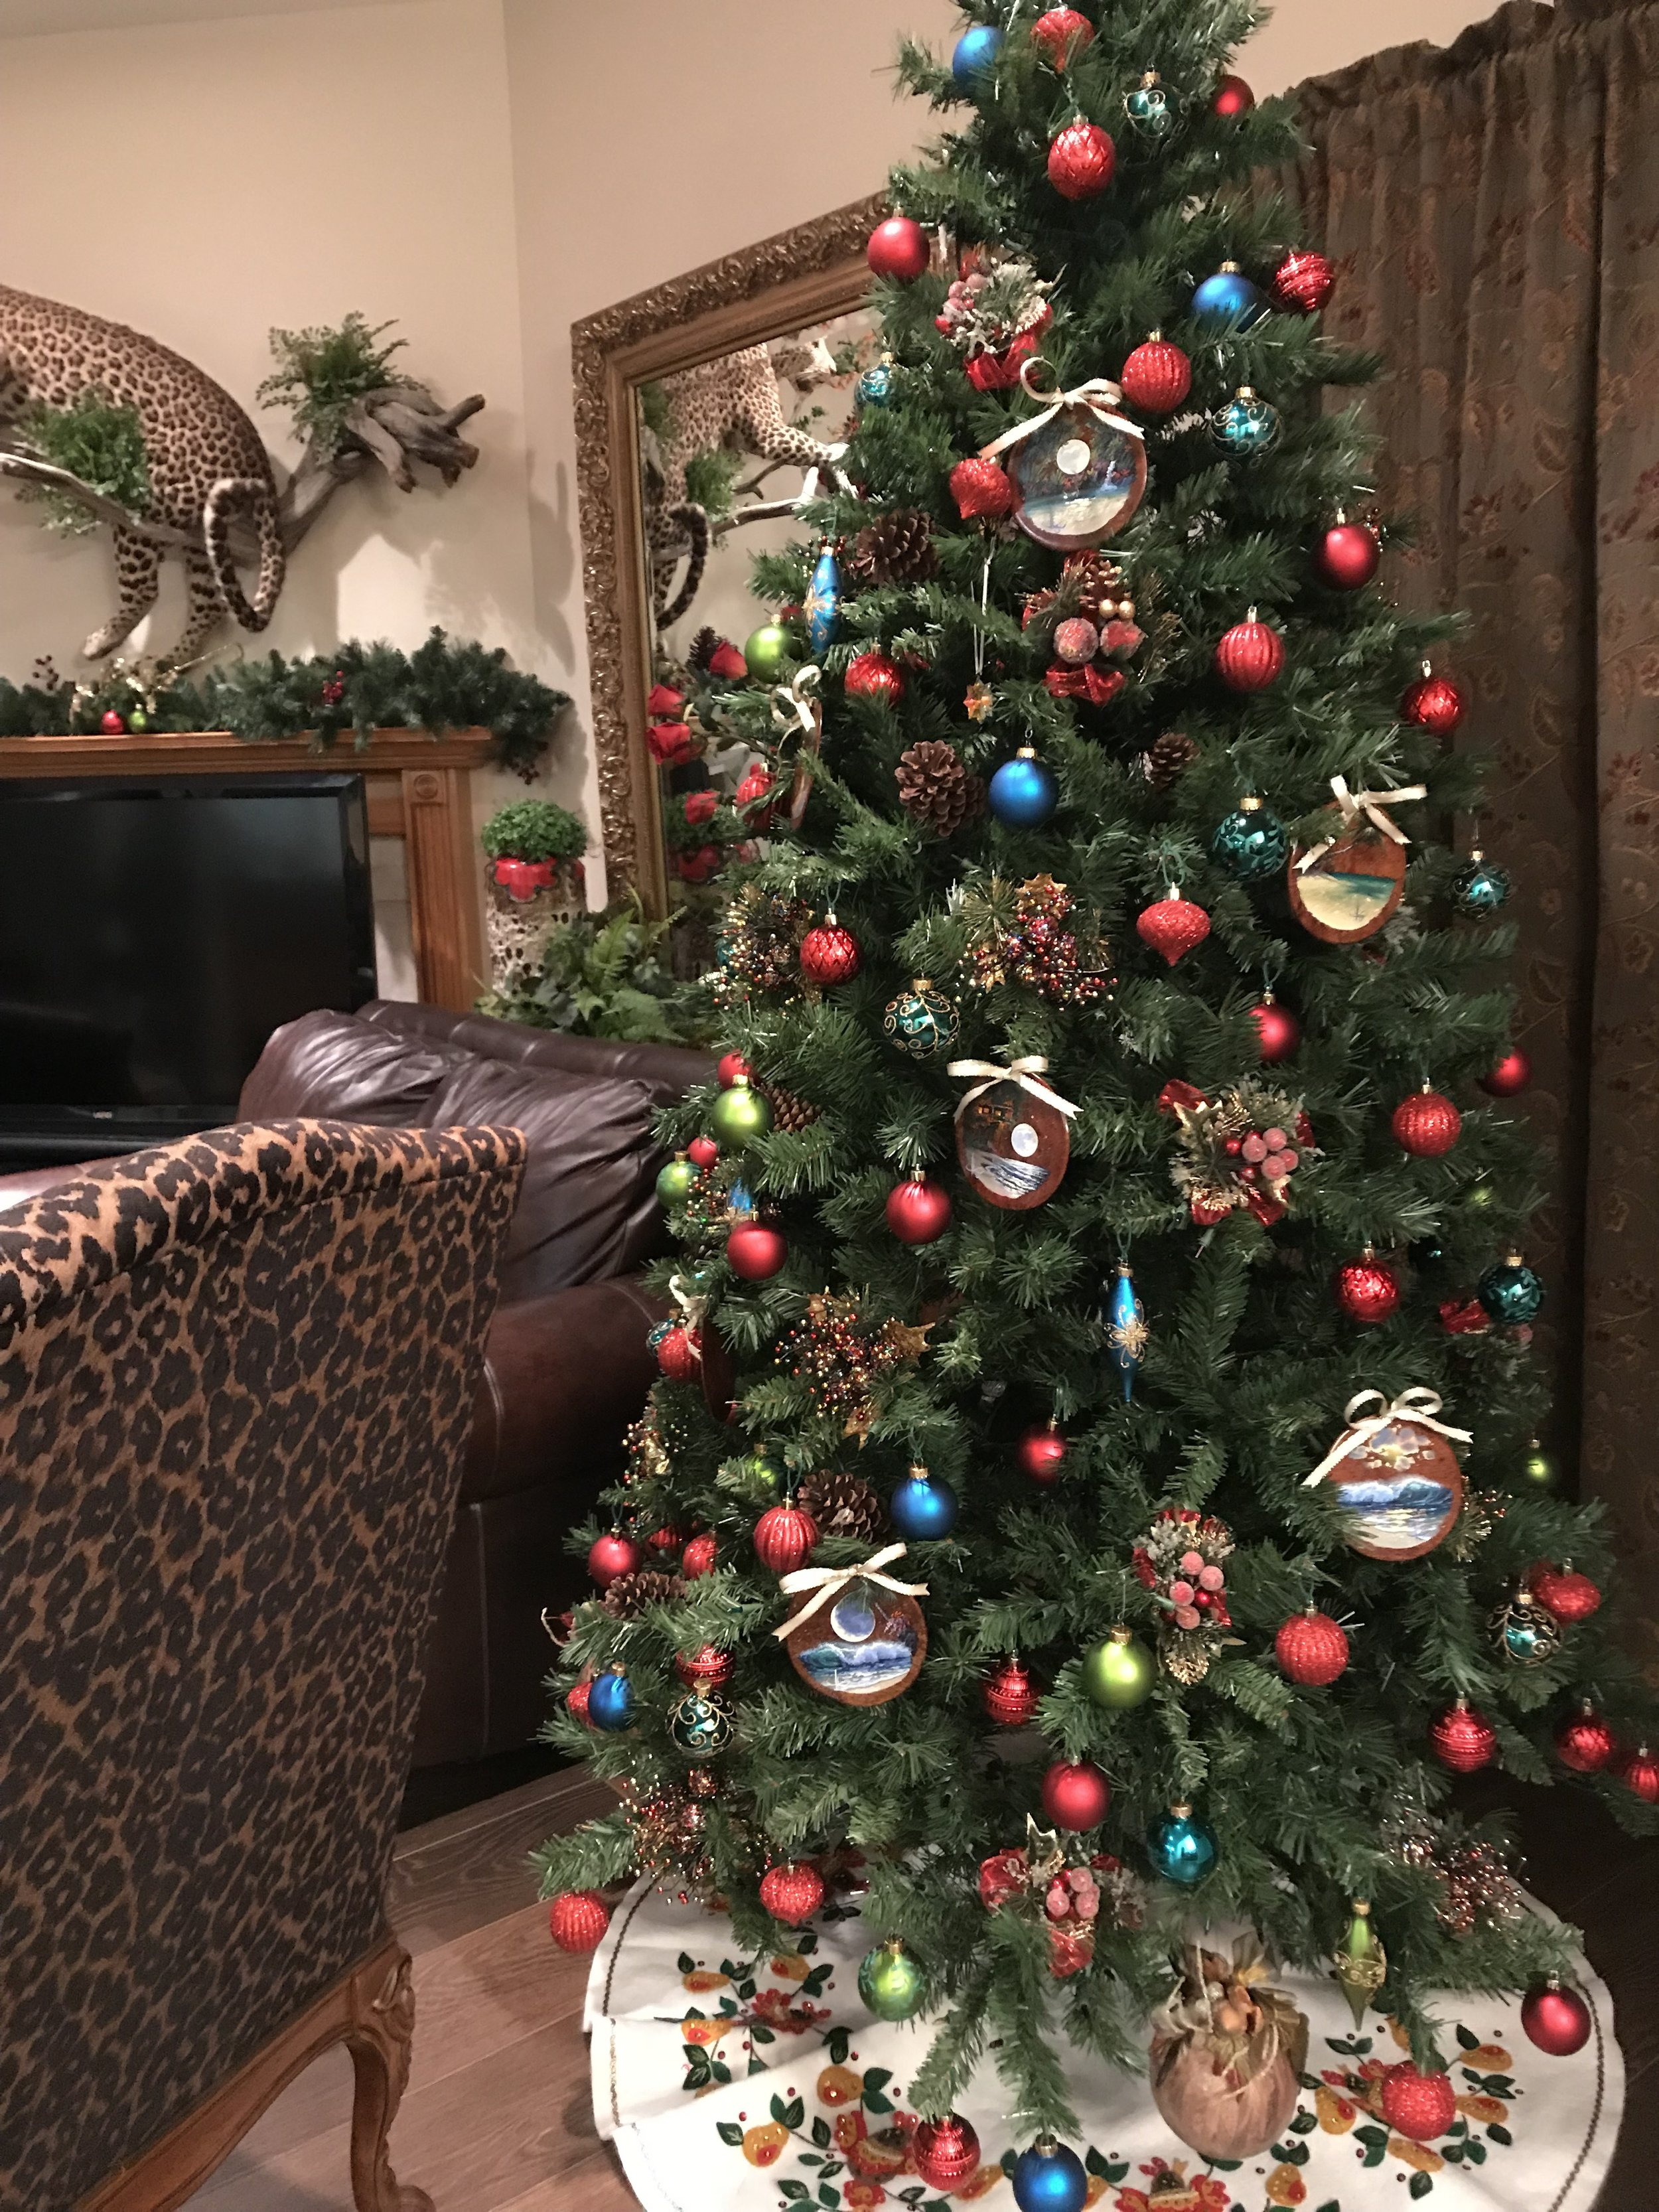 Collectors Christmas tree with my Christmas ornaments.